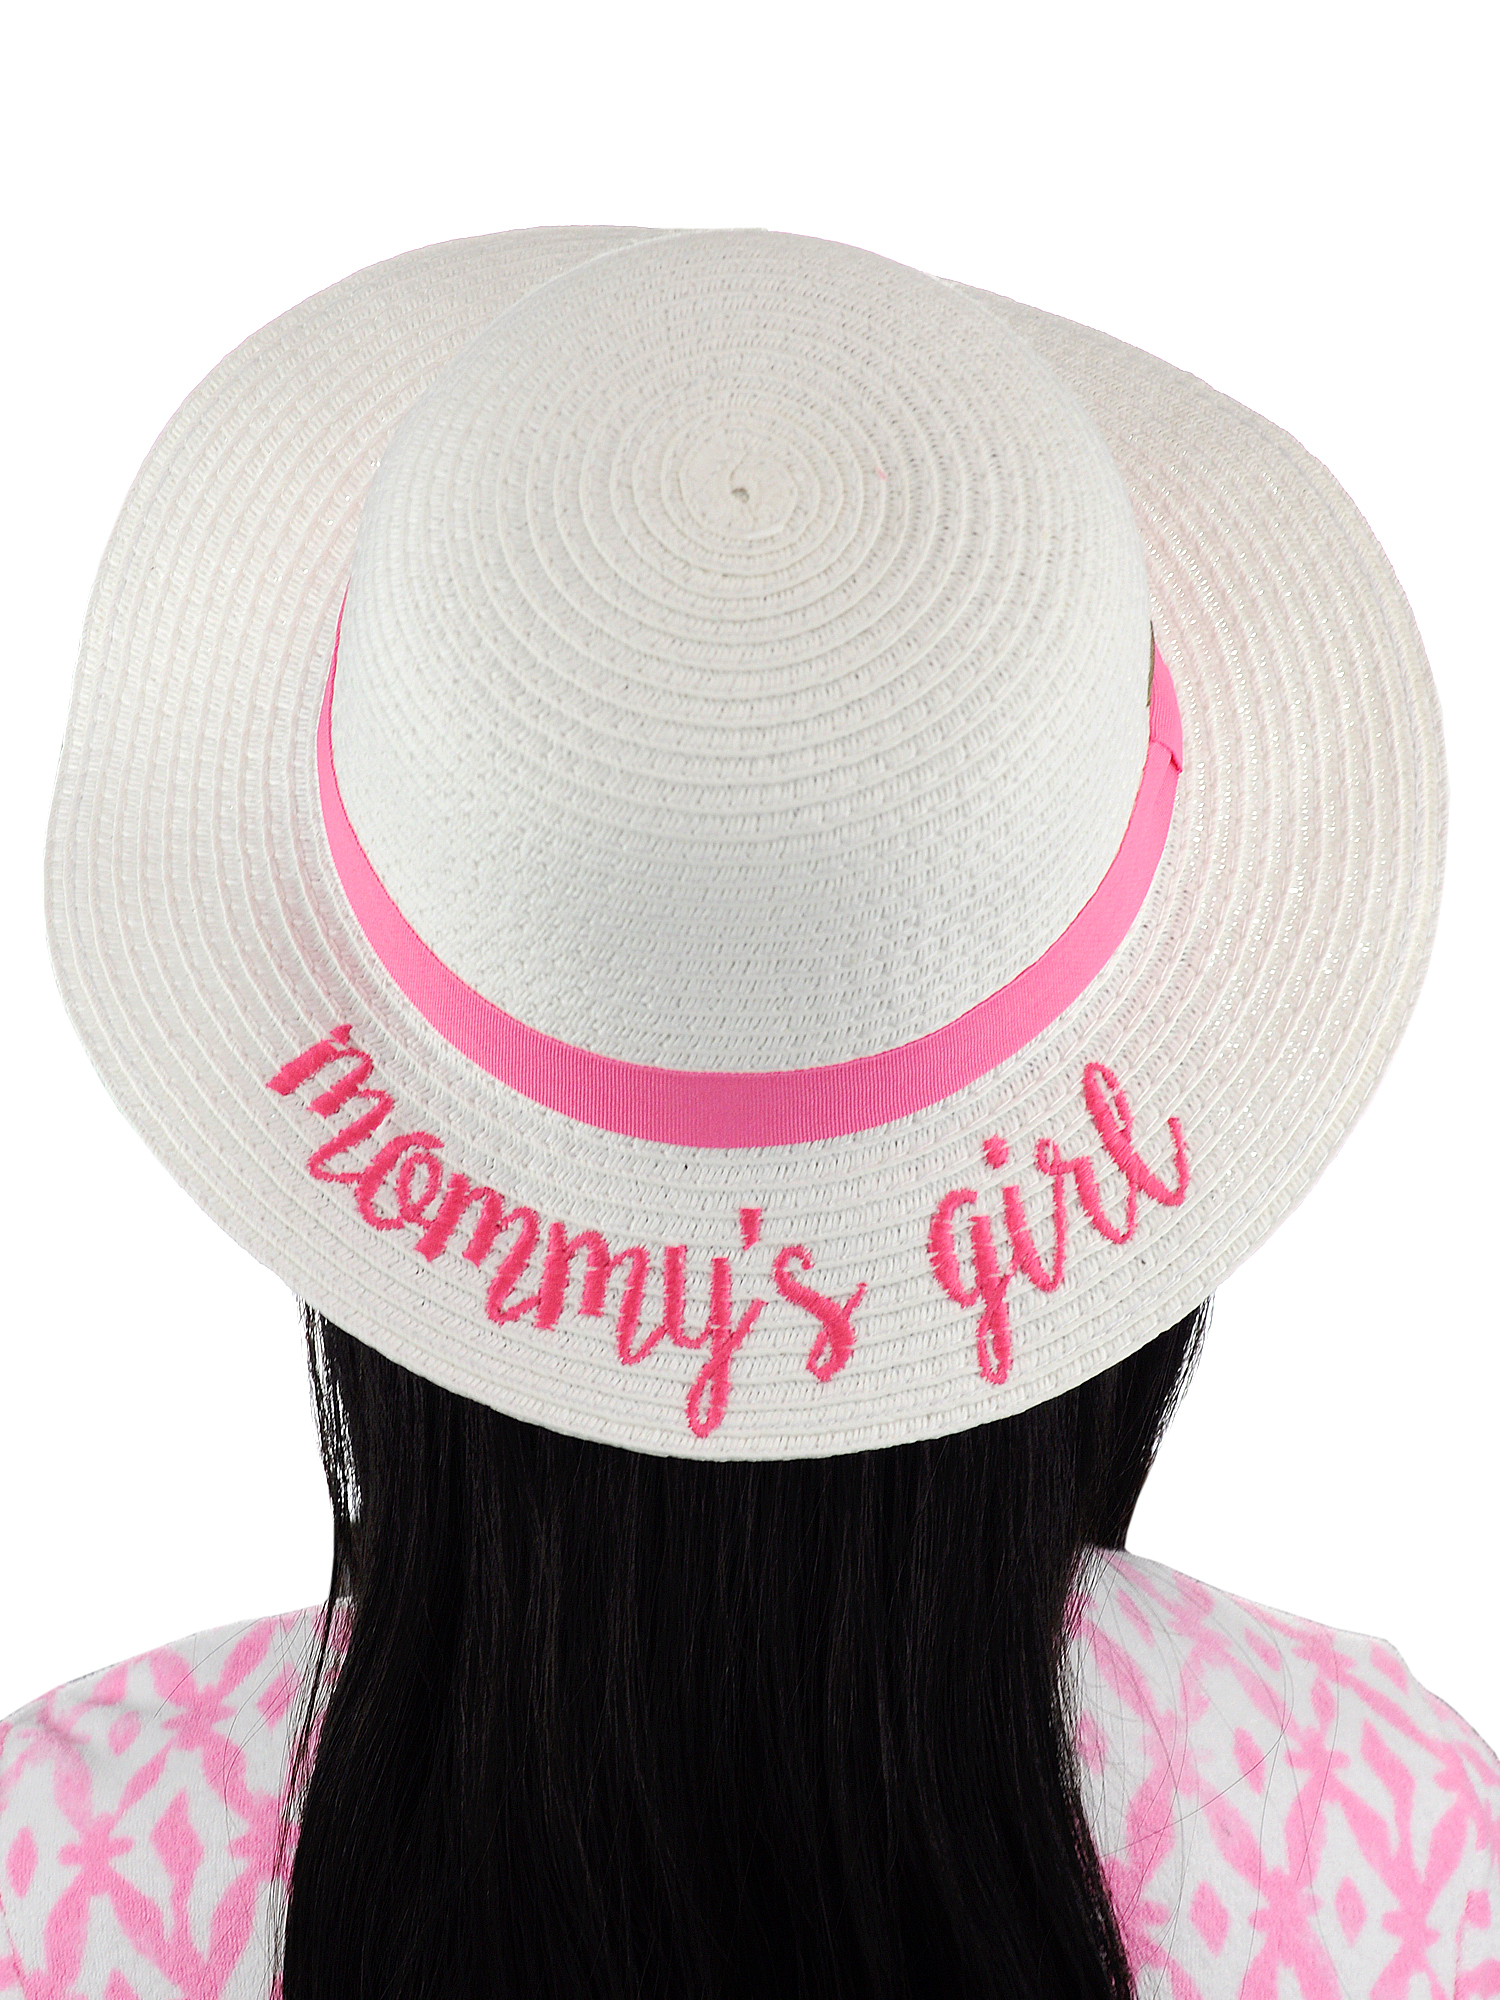 9881efdc580 C.C Children's Weaved Crushable Beach Embroidered Quote Flop Brim Sun Hat,  Mommy's Girl